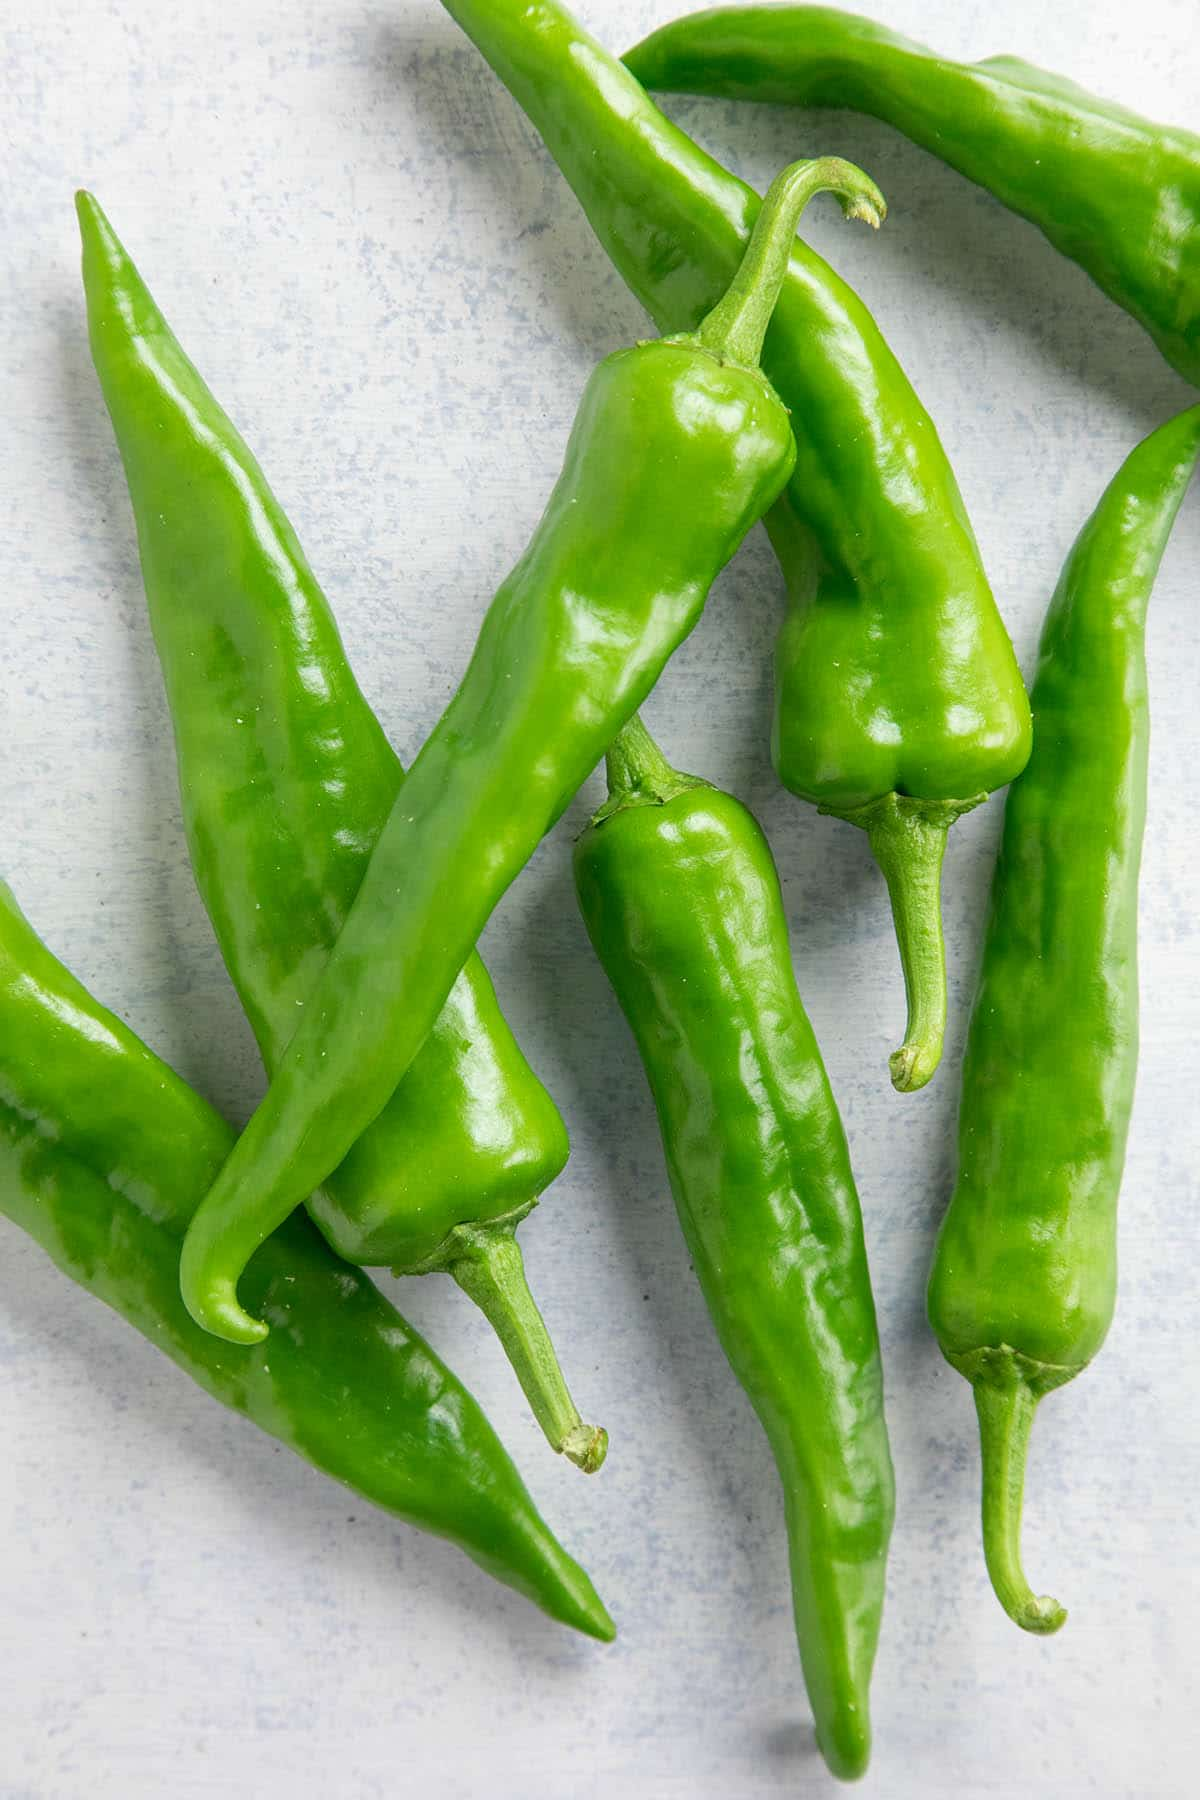 Barker's Hot Chili Peppers